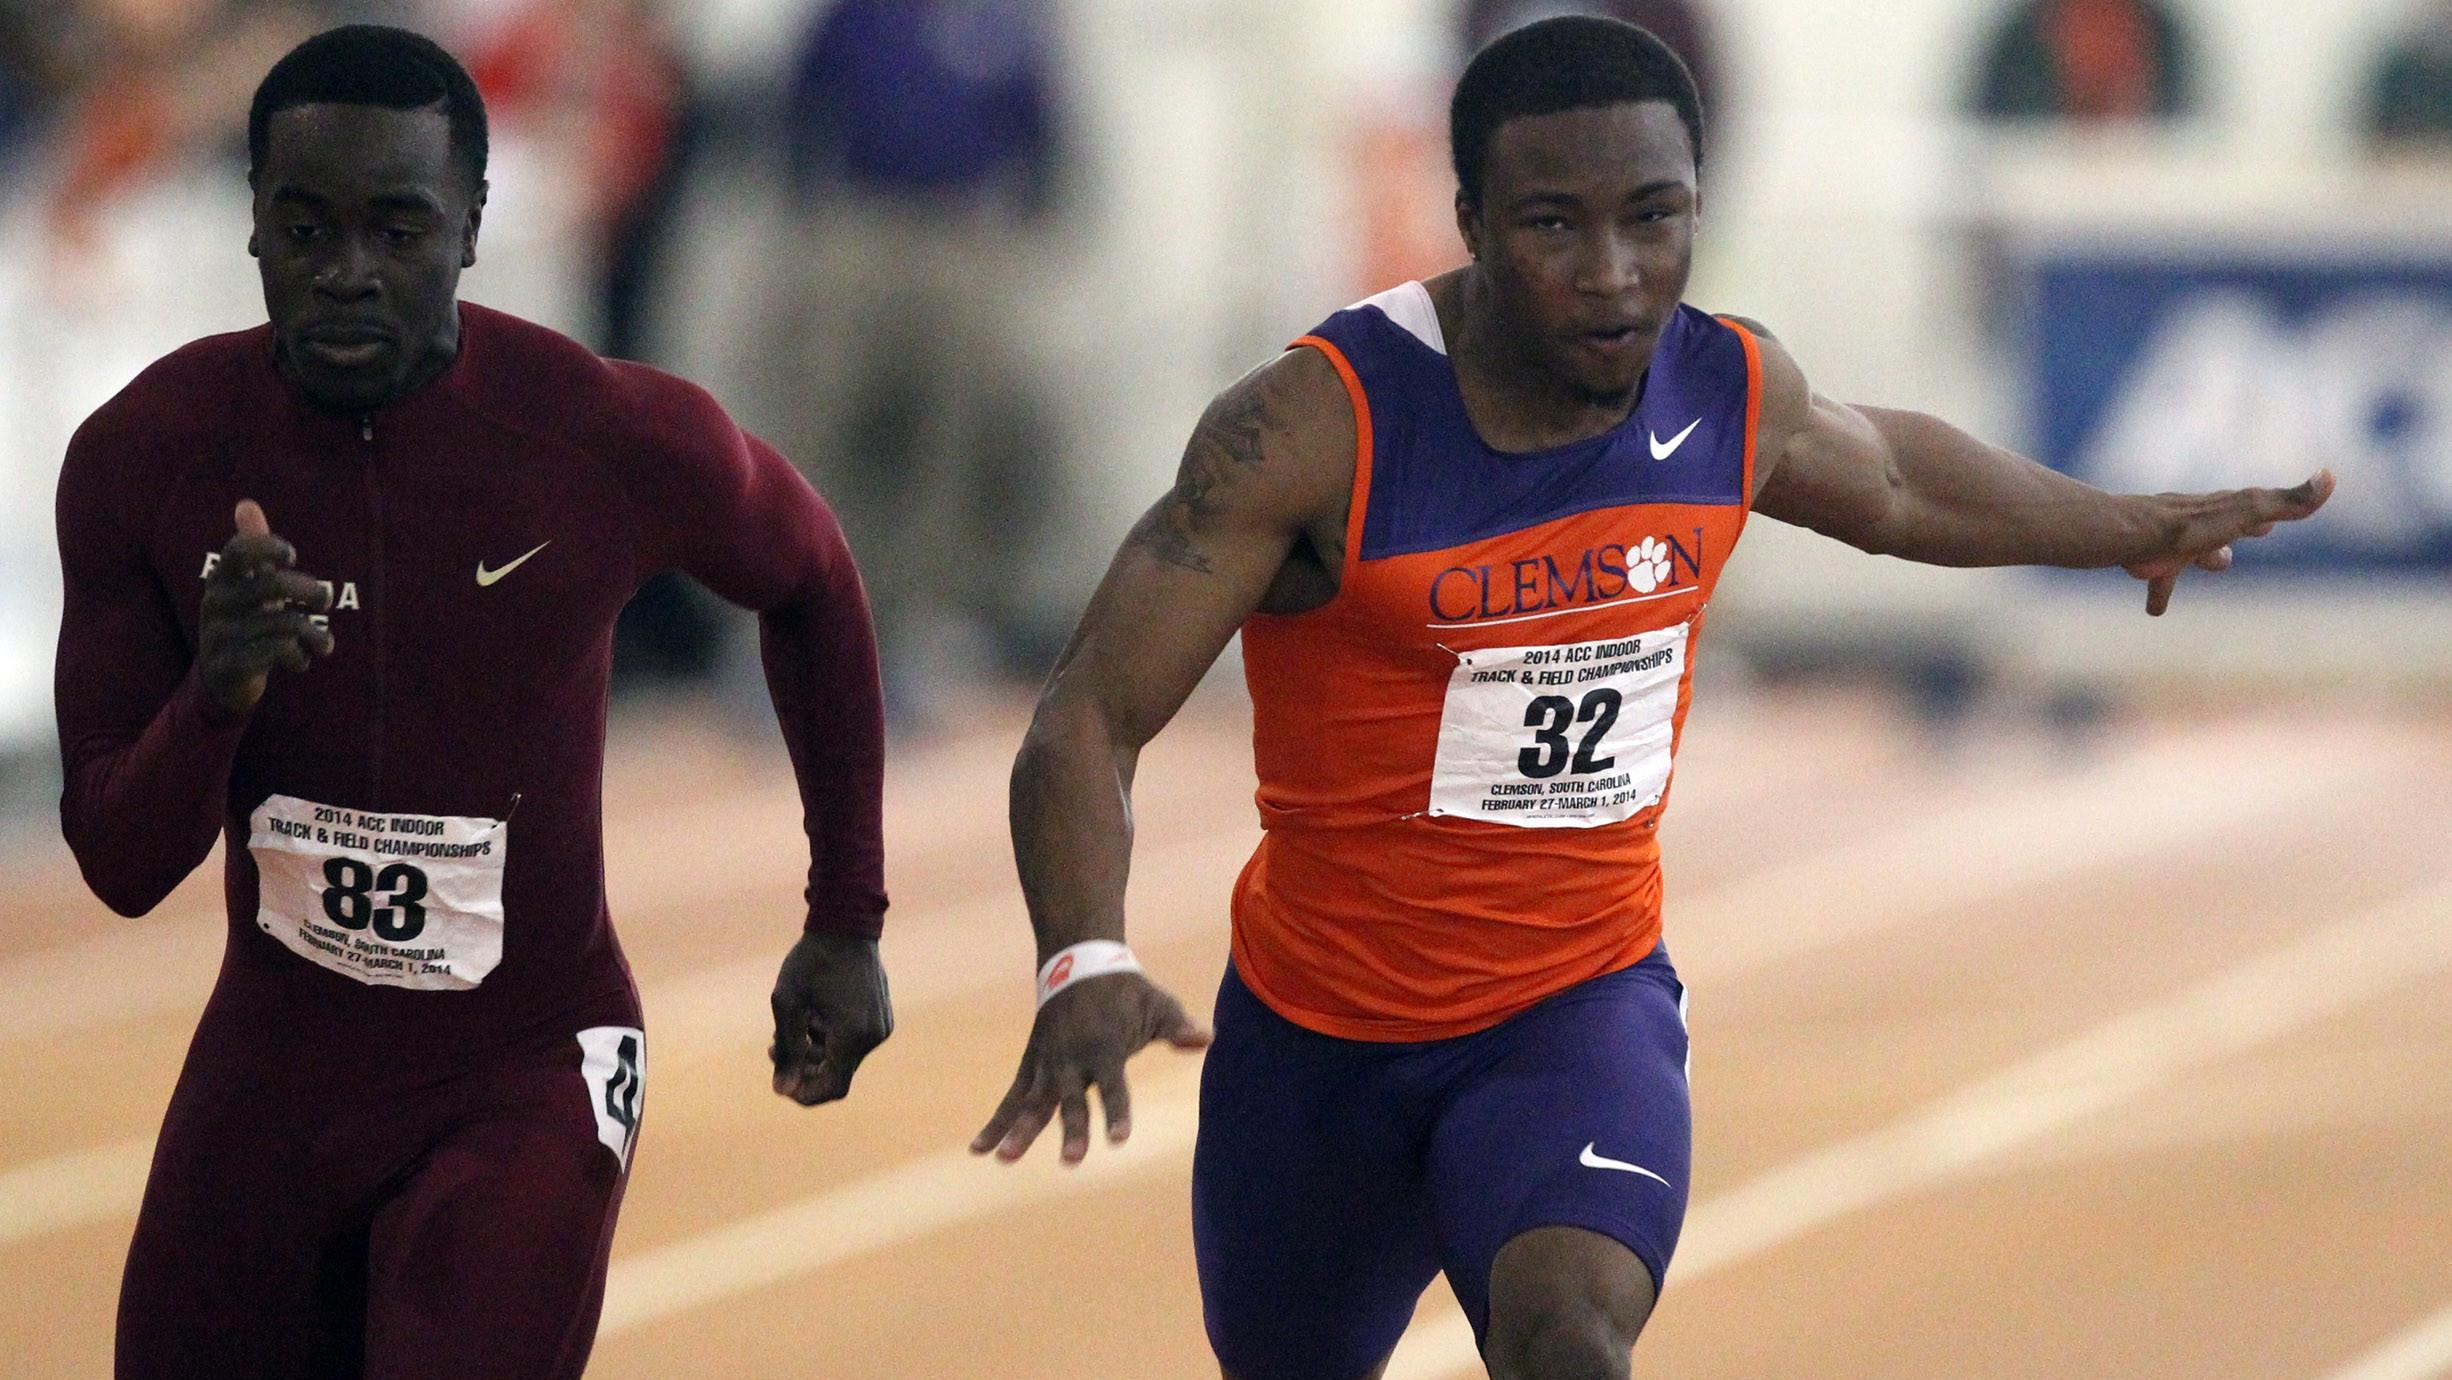 Hester Advances to 60 Final at NCAA Indoor Championships